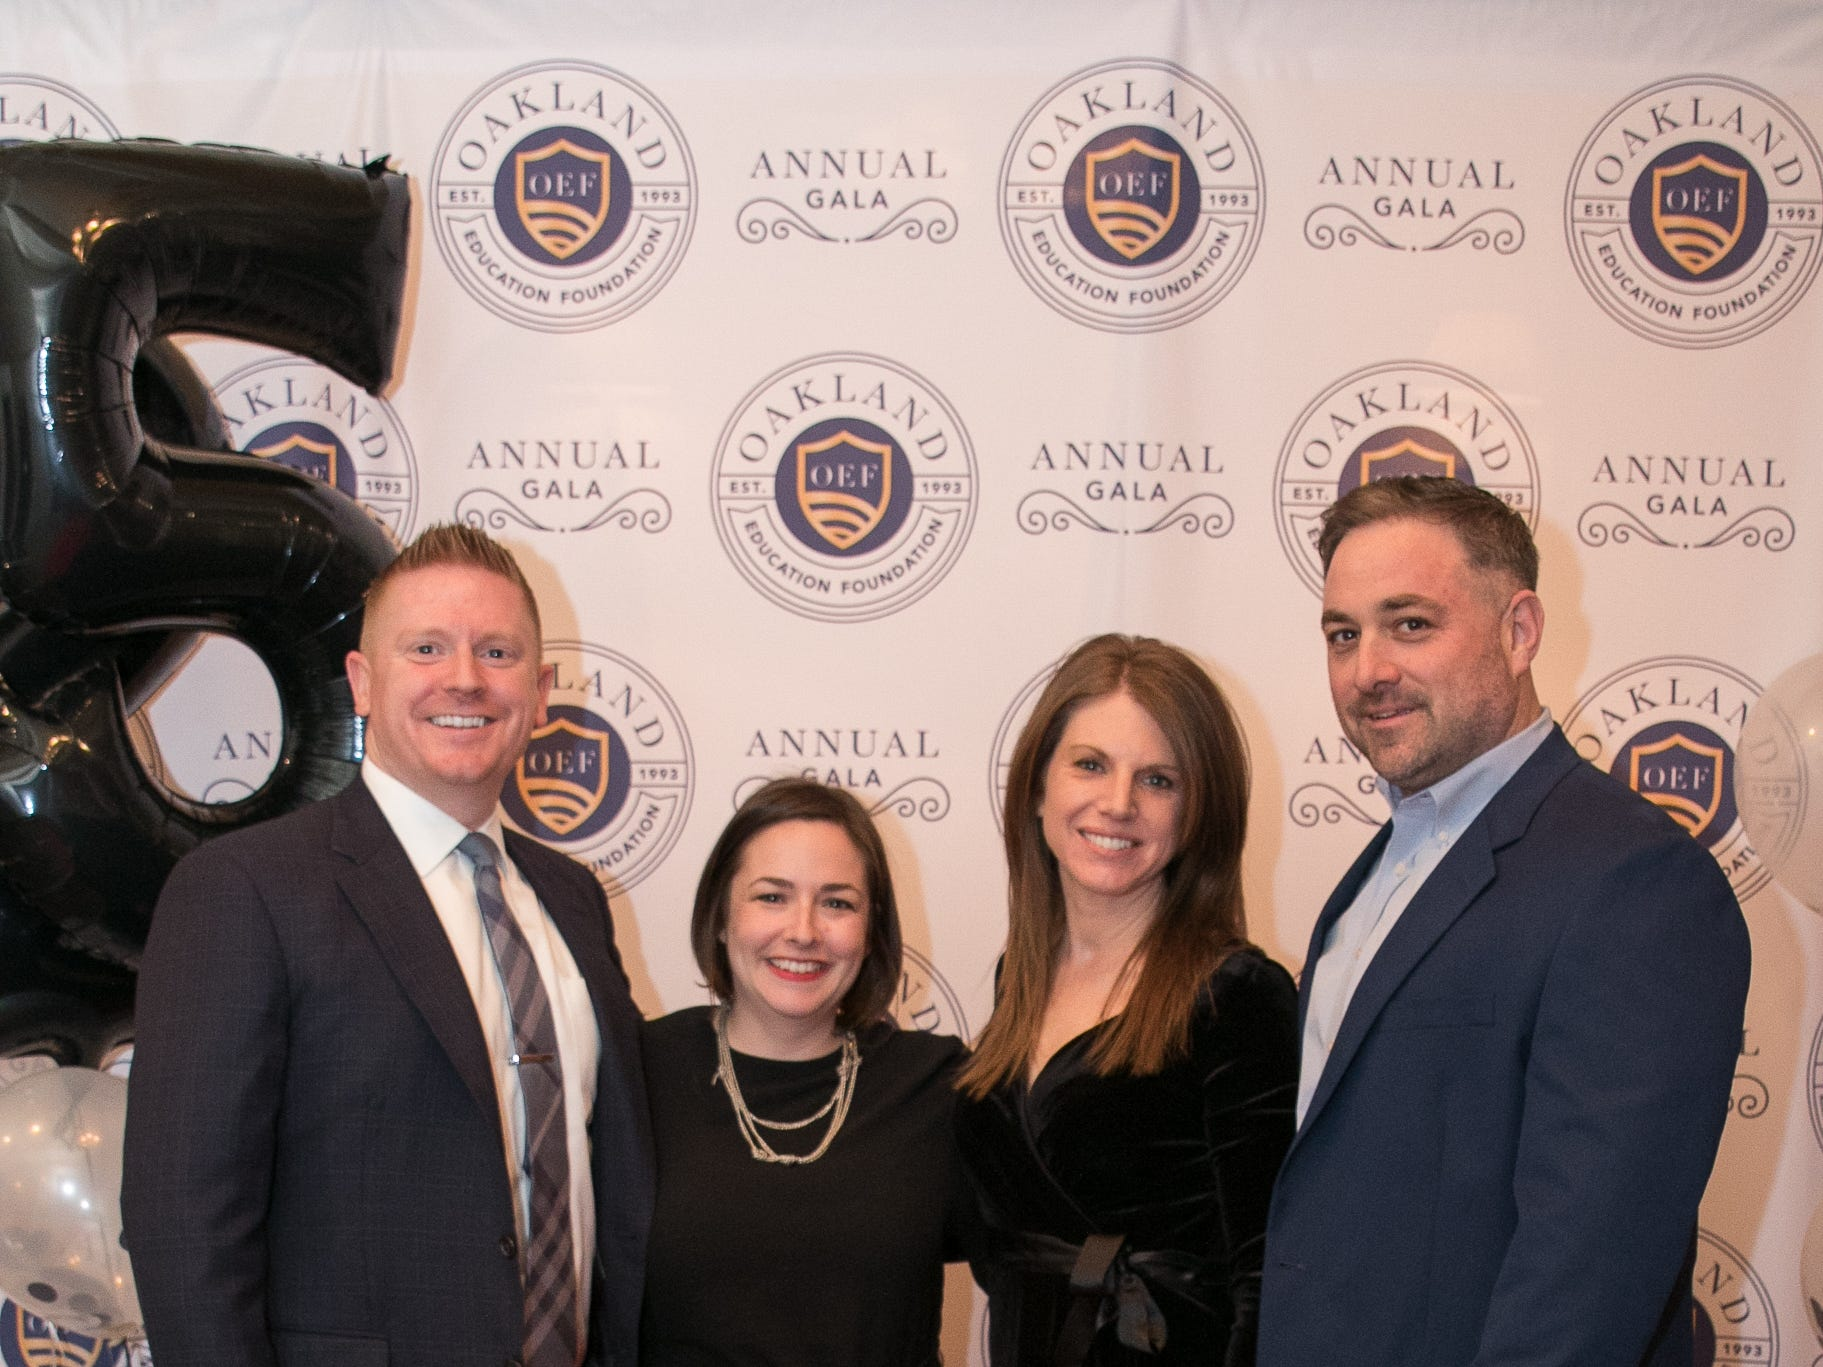 Jay and Jessica Stroud with Stacie and Brian Mayack. The Oakland Education Foundation held their 25th Anniversary Casino Night Gala at Preakness Hills Country Club in Wayne. 03/16/2019